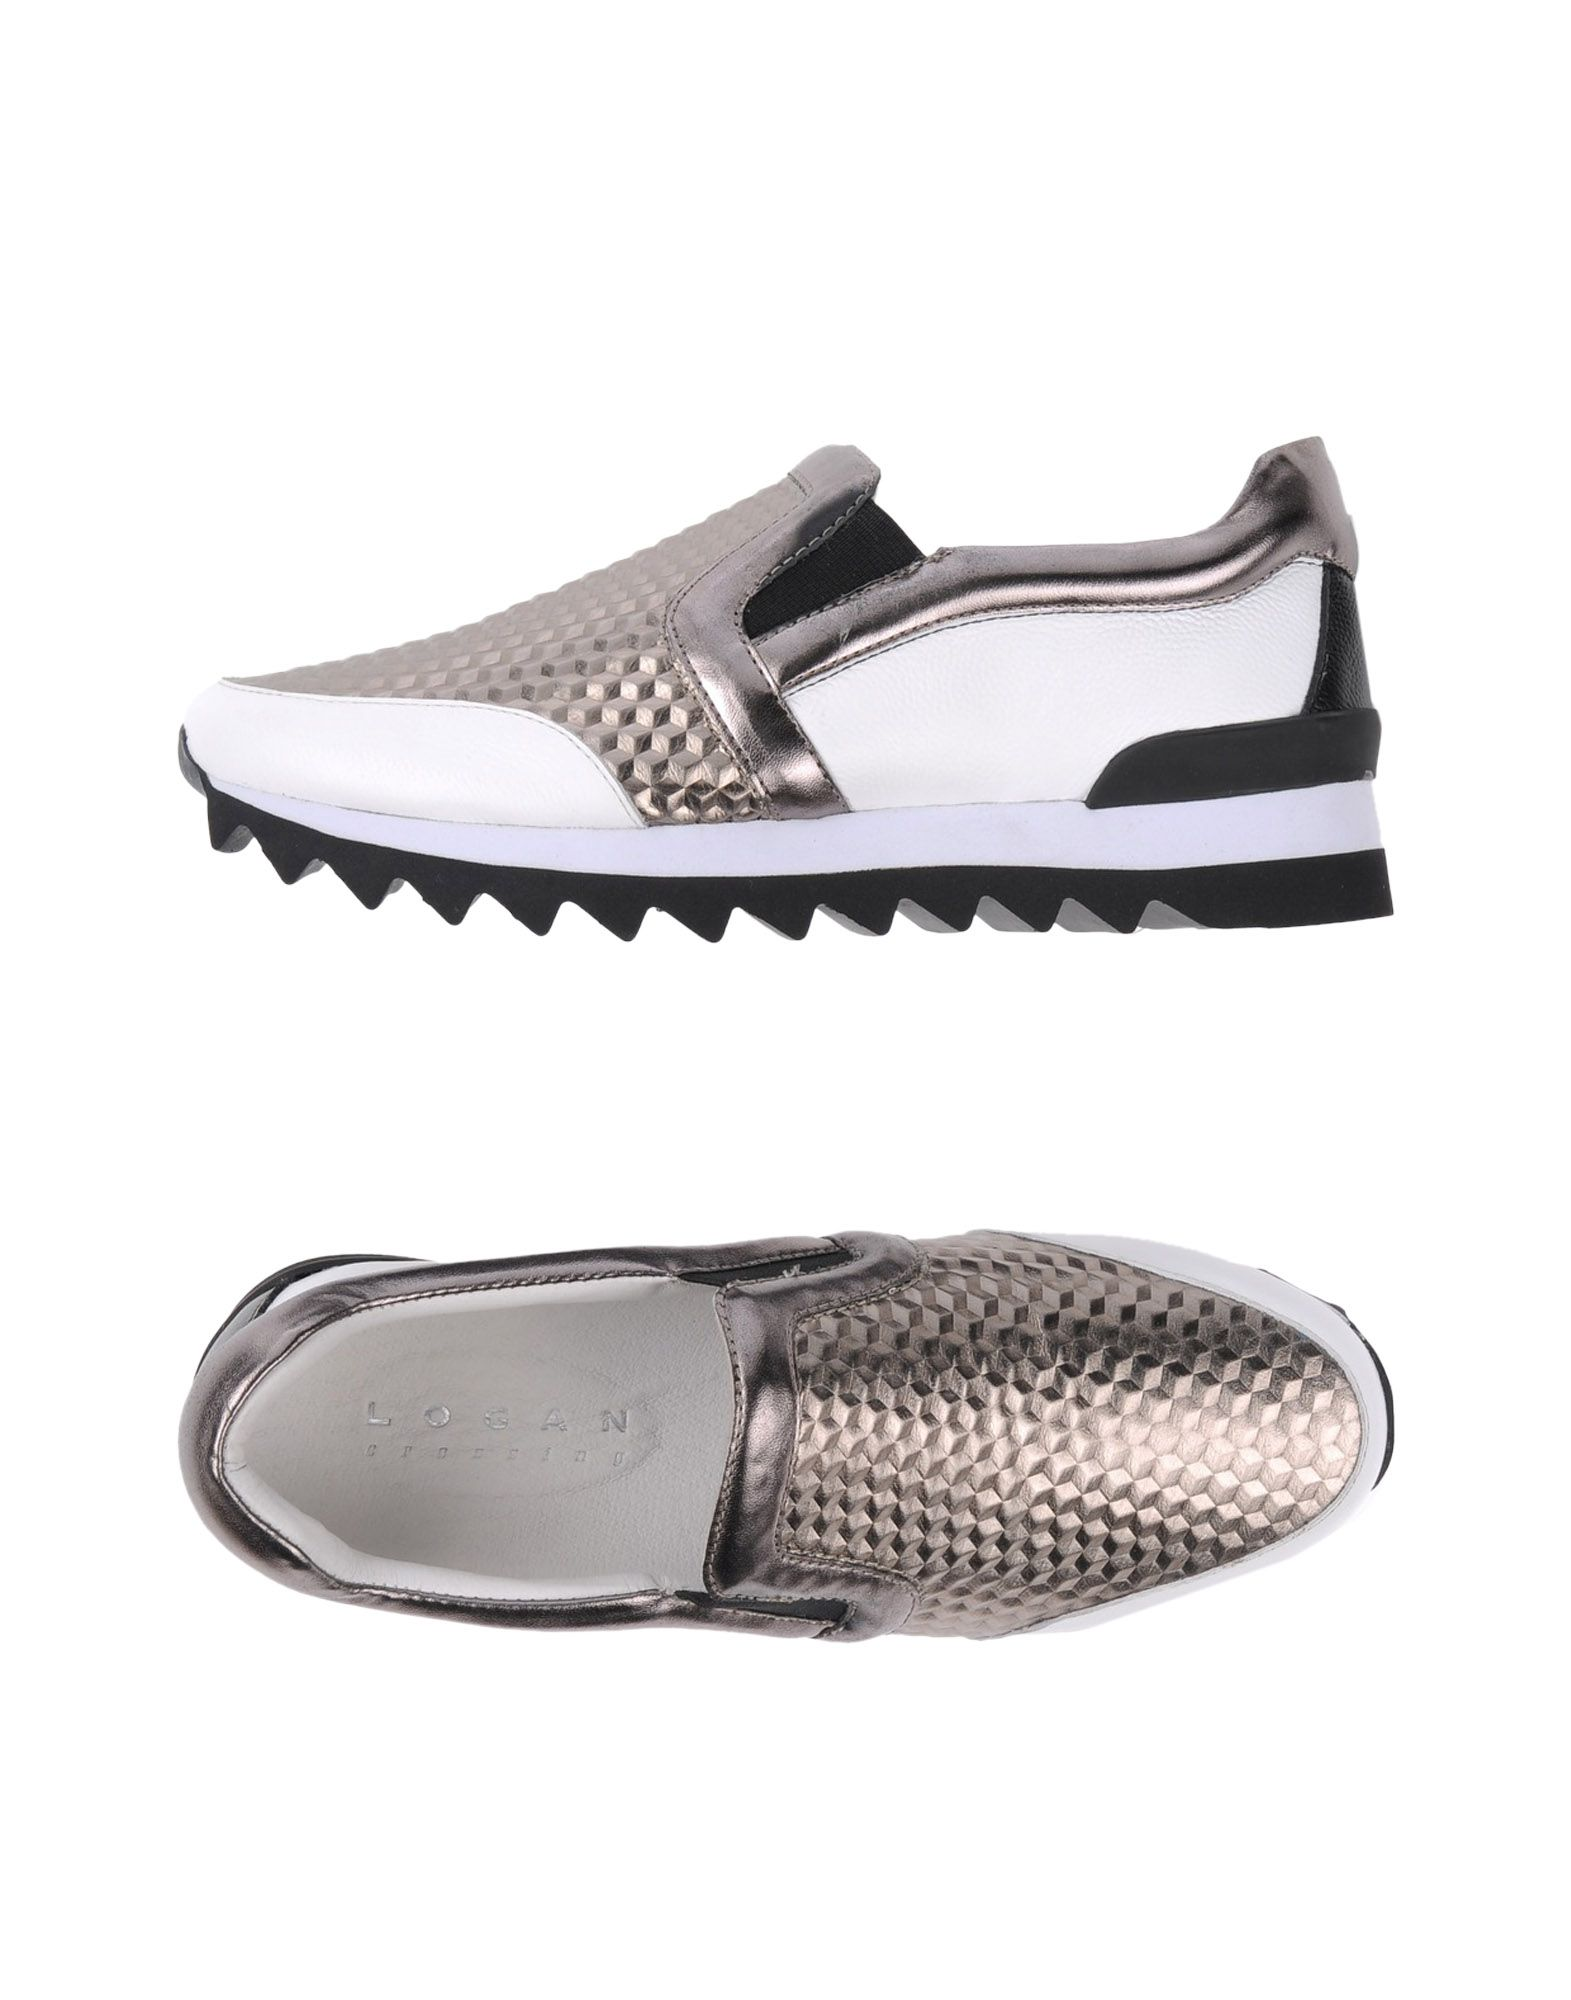 Logan Crossing Sneakers Sneakers - Women Logan Crossing Sneakers Sneakers online on  United Kingdom - 11145755BD ecff45